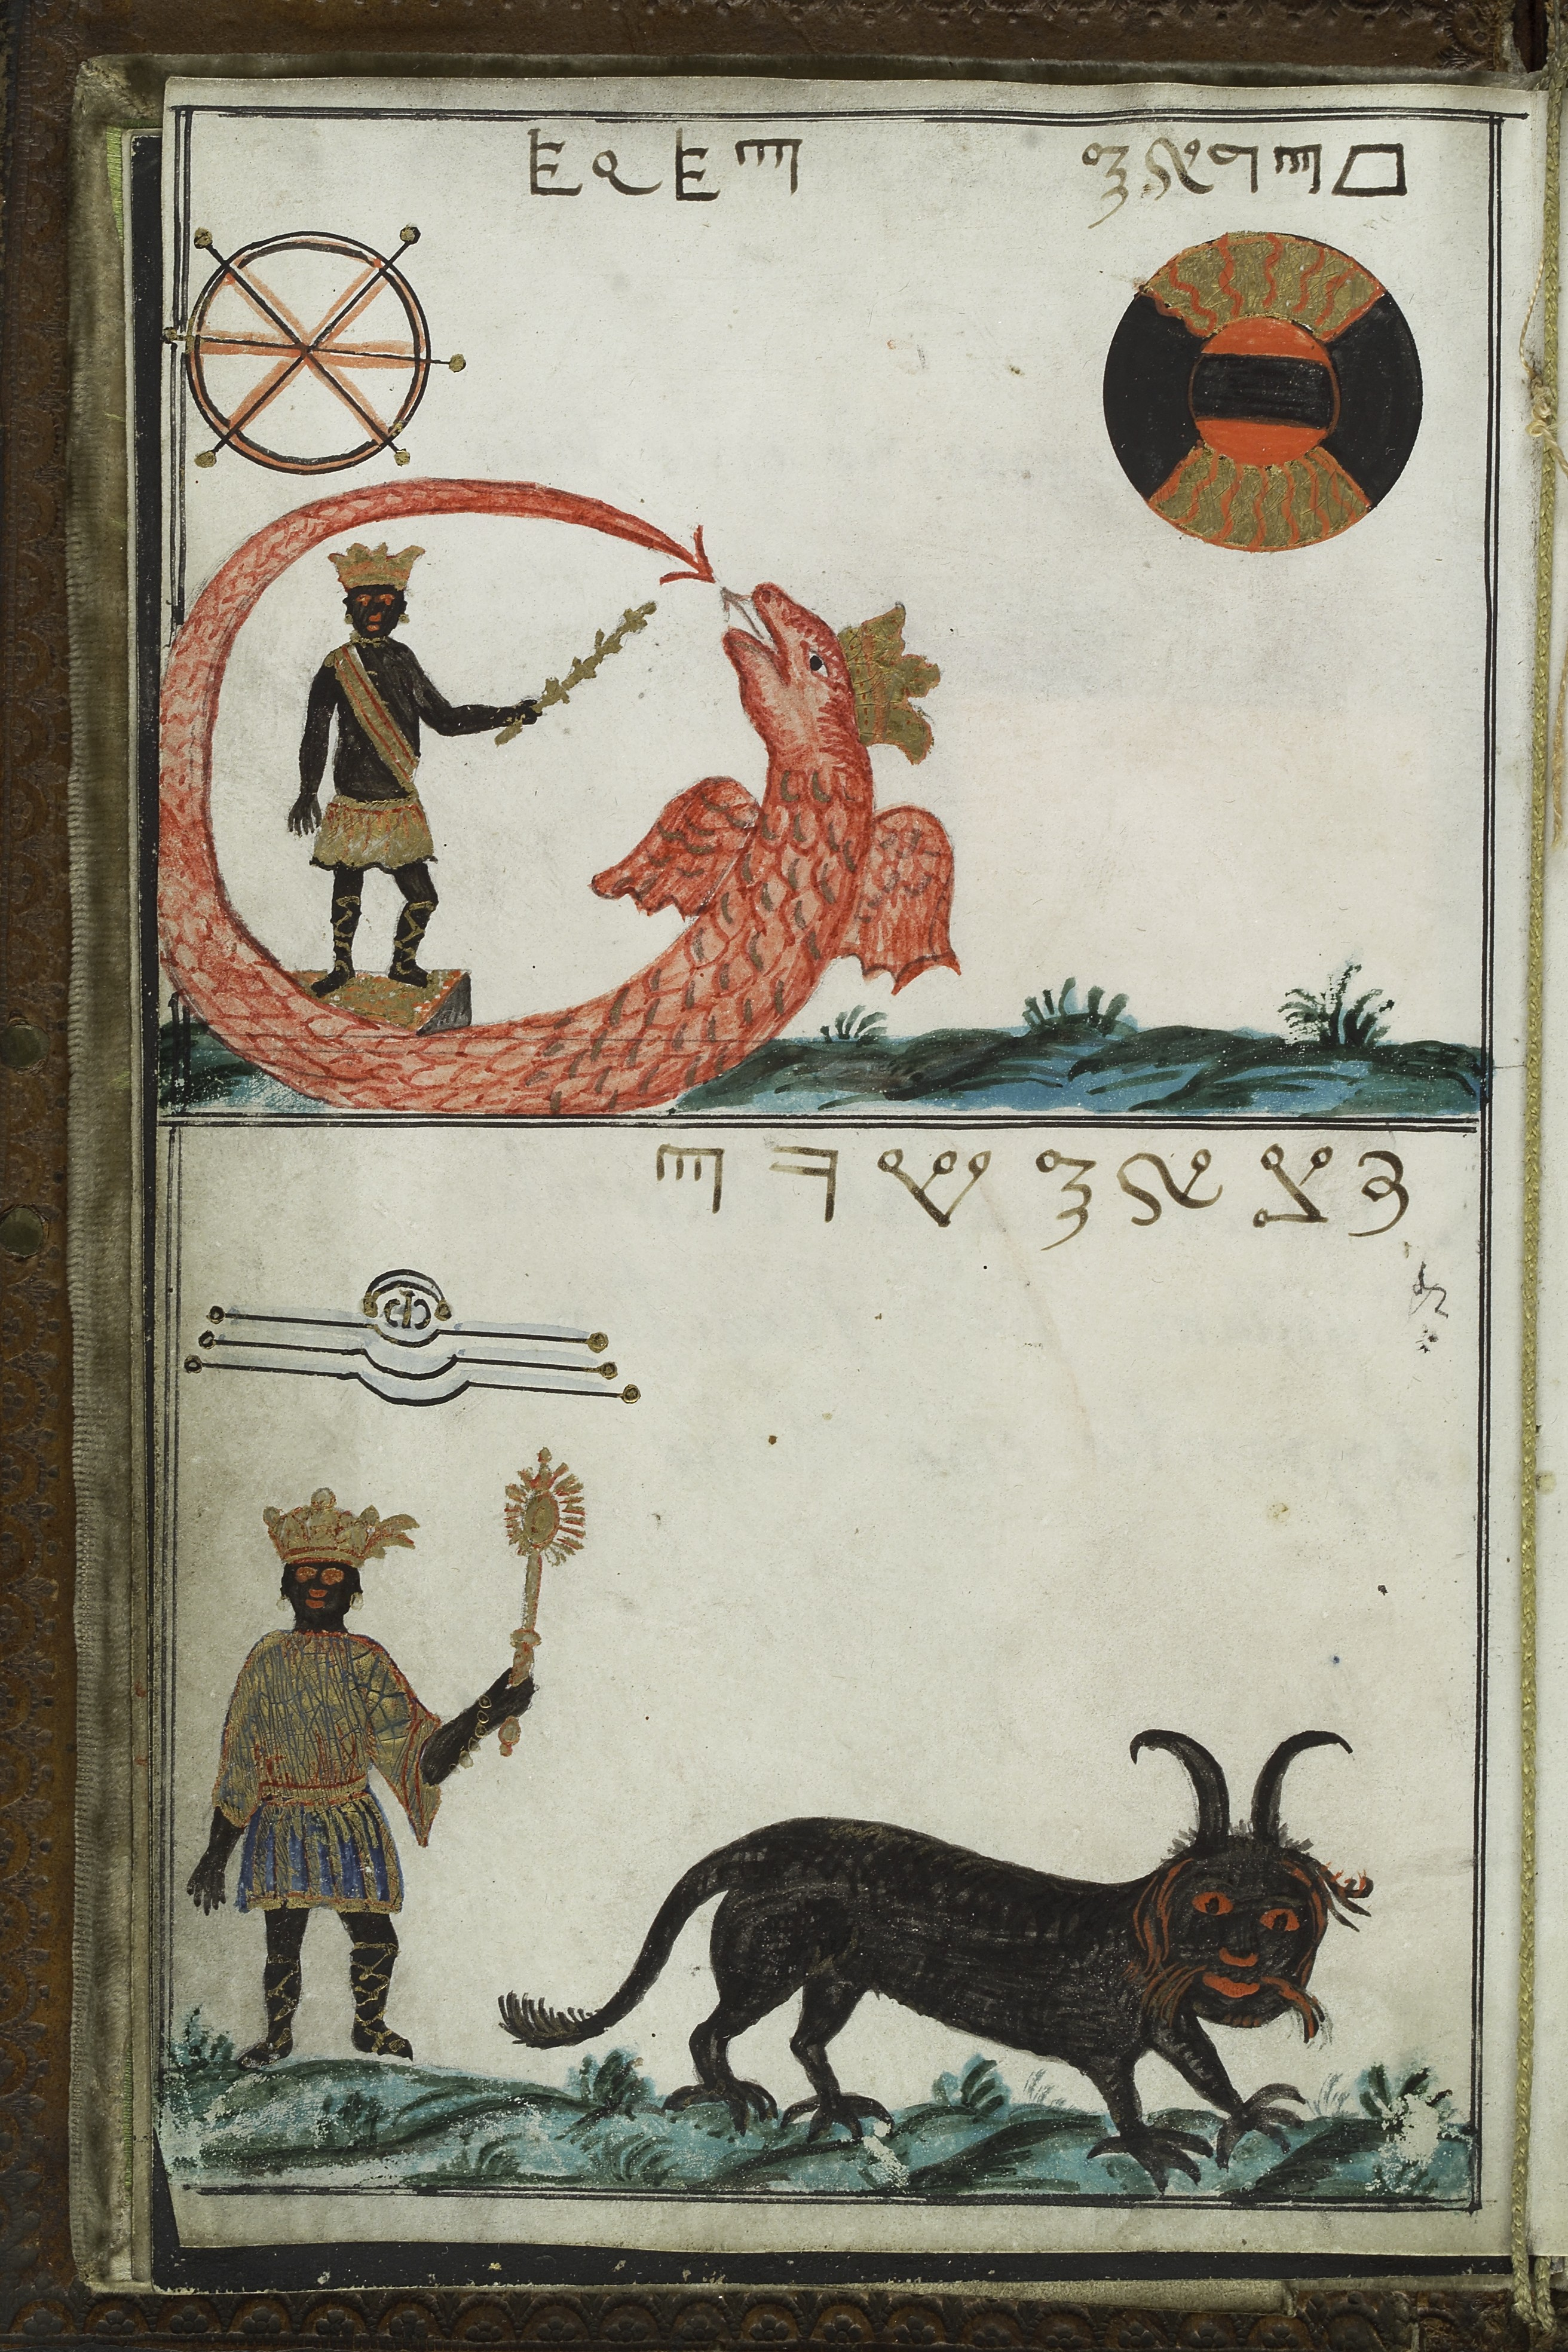 Illustrations showing kings wearing gold crowns, represented by Uricus - a red-crowned and winged serpent - as King of the East; and Paymon - a black cat-like animal with horns, long whiskers and tail - as King of the West. From Cyprianus, 18th century. Cyprianus is also known as the Black Book, and is the textbook of the Black School at Wittenburg, the book from which a witch or sorceror gets his spells. The Black School at Wittenburg was purportedly a place in Germany where one went to learn the black arts.